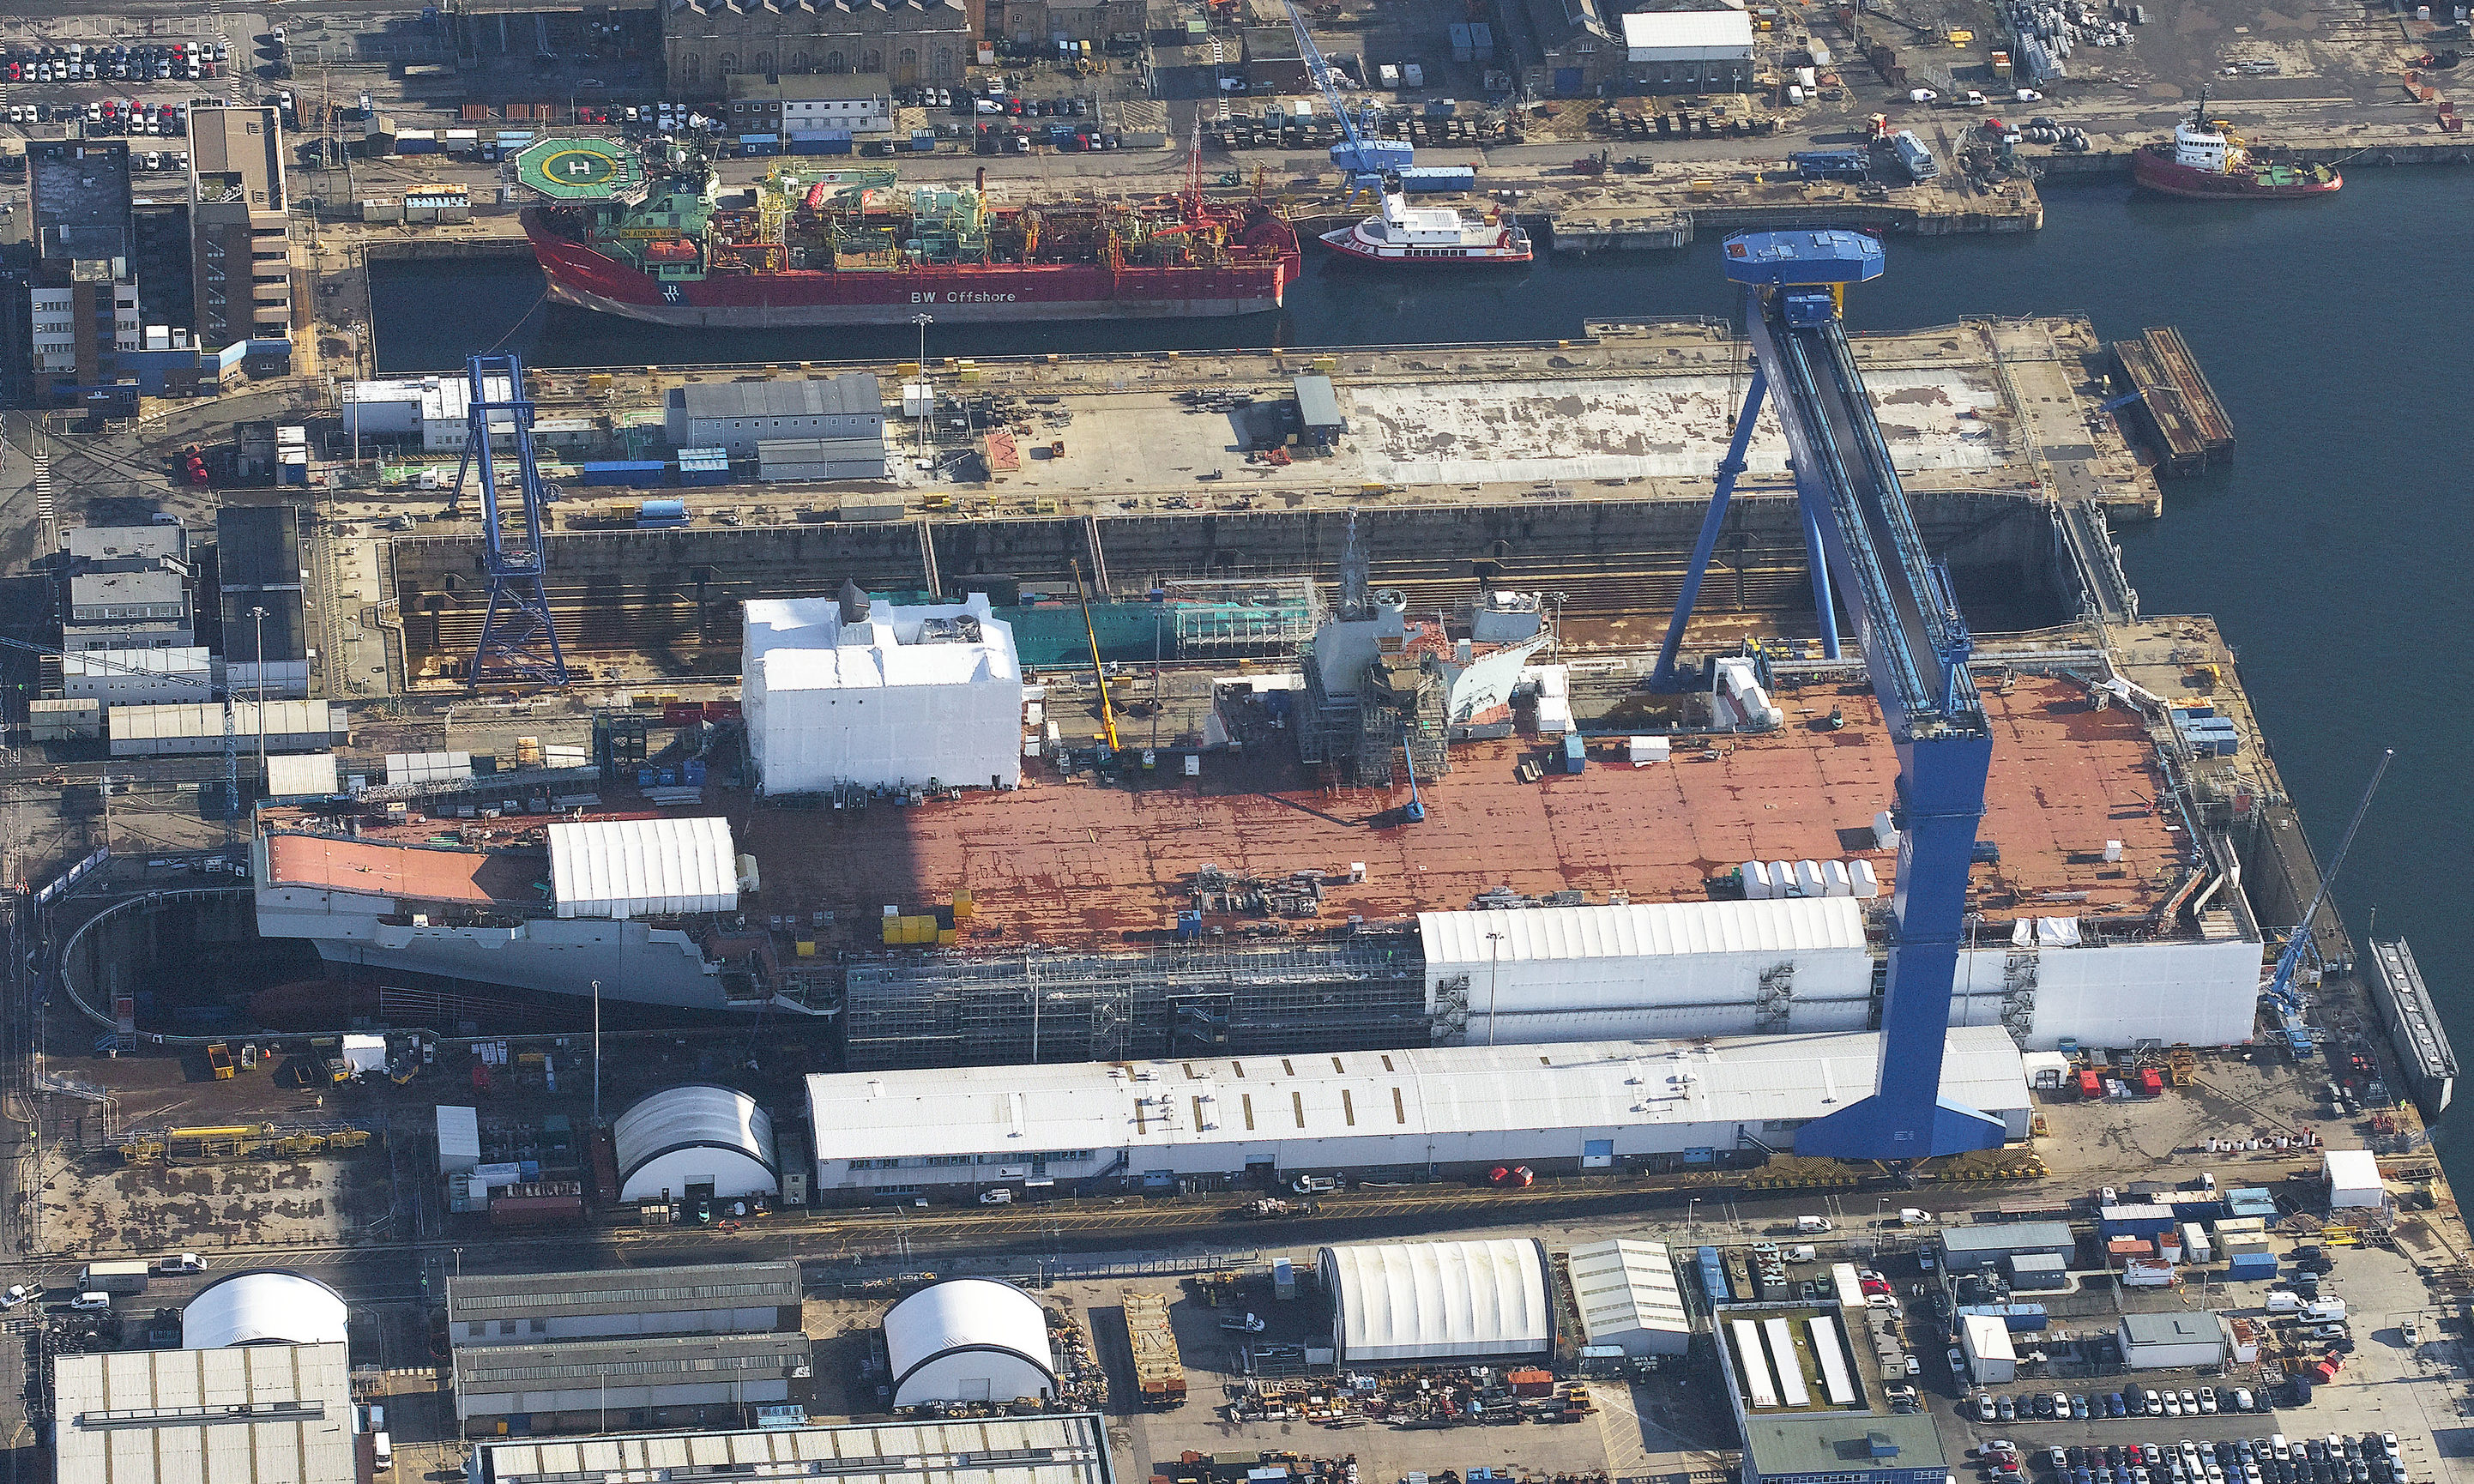 The building of the Prince of Wales, the Royal Navy's second new aircraft carrier, is coming to an end.